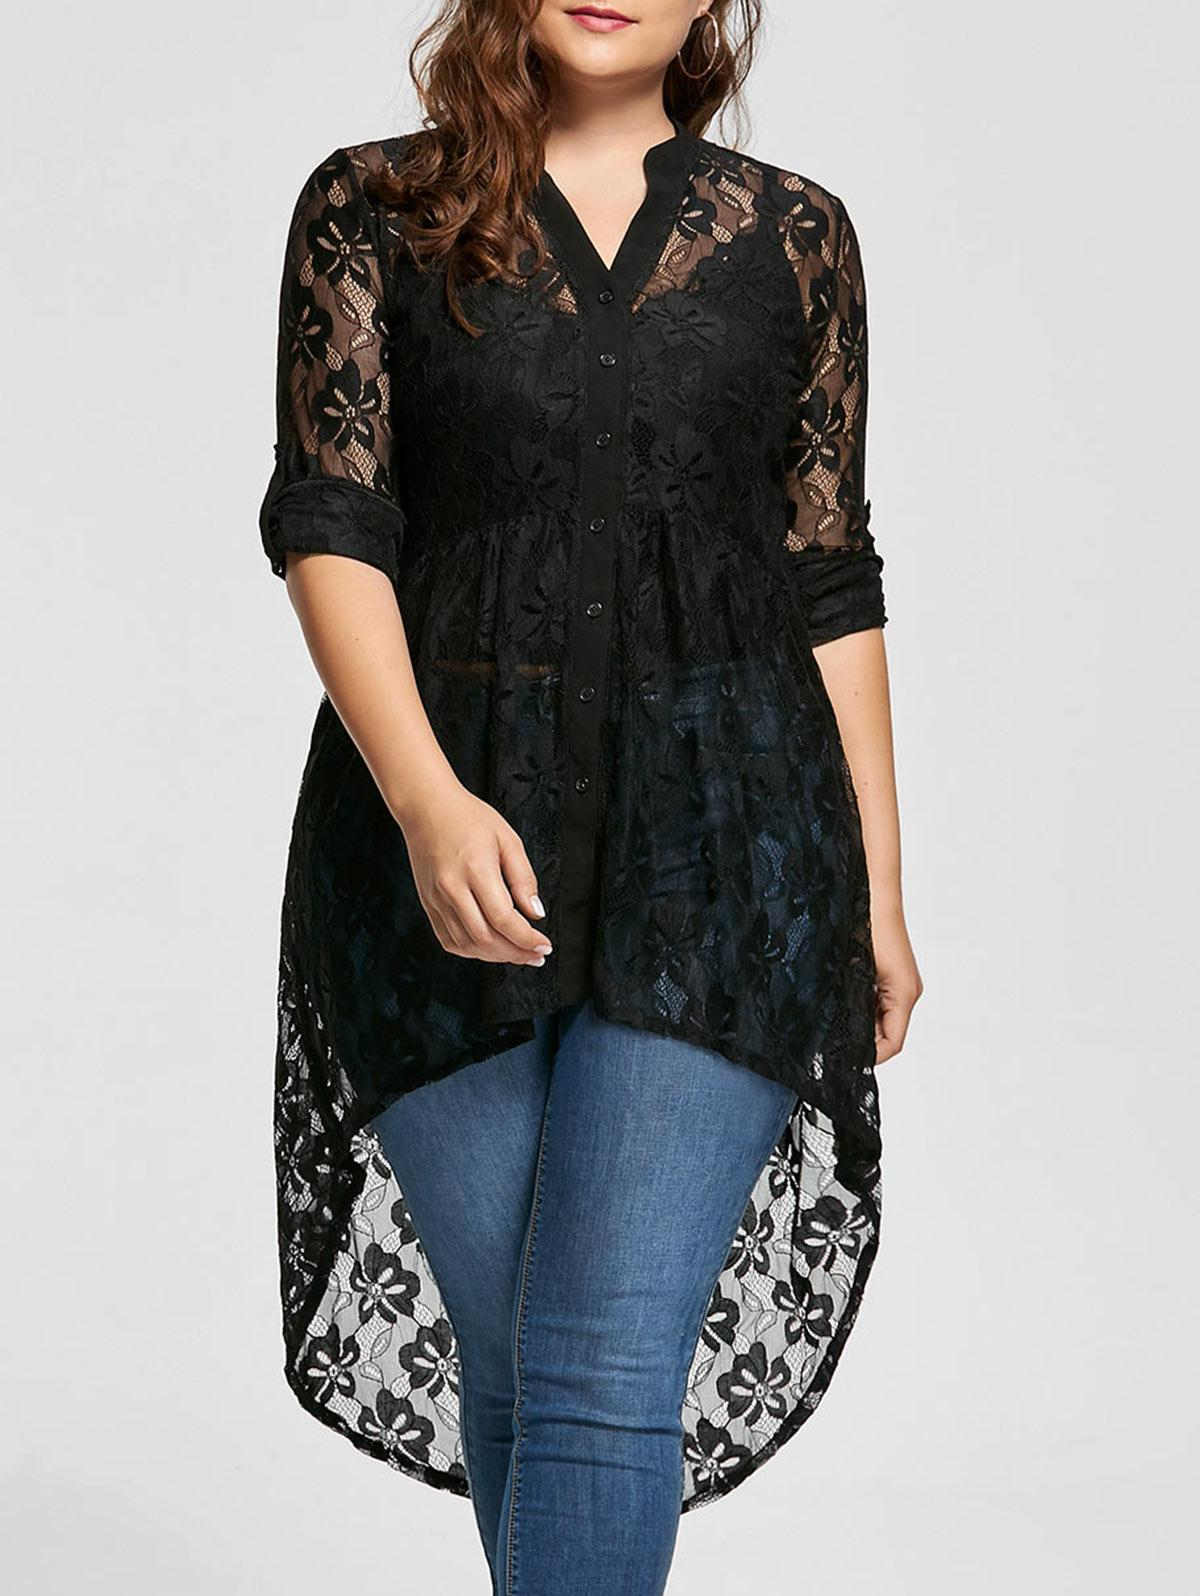 f962015c642d68 Women Plus Size Blouse Spring Autumn Long Sleeve High Low Lace Shirts See  Through Button Up Ladies Big Size Female Tops Raid Shirt T Shirts In A Day  From ...